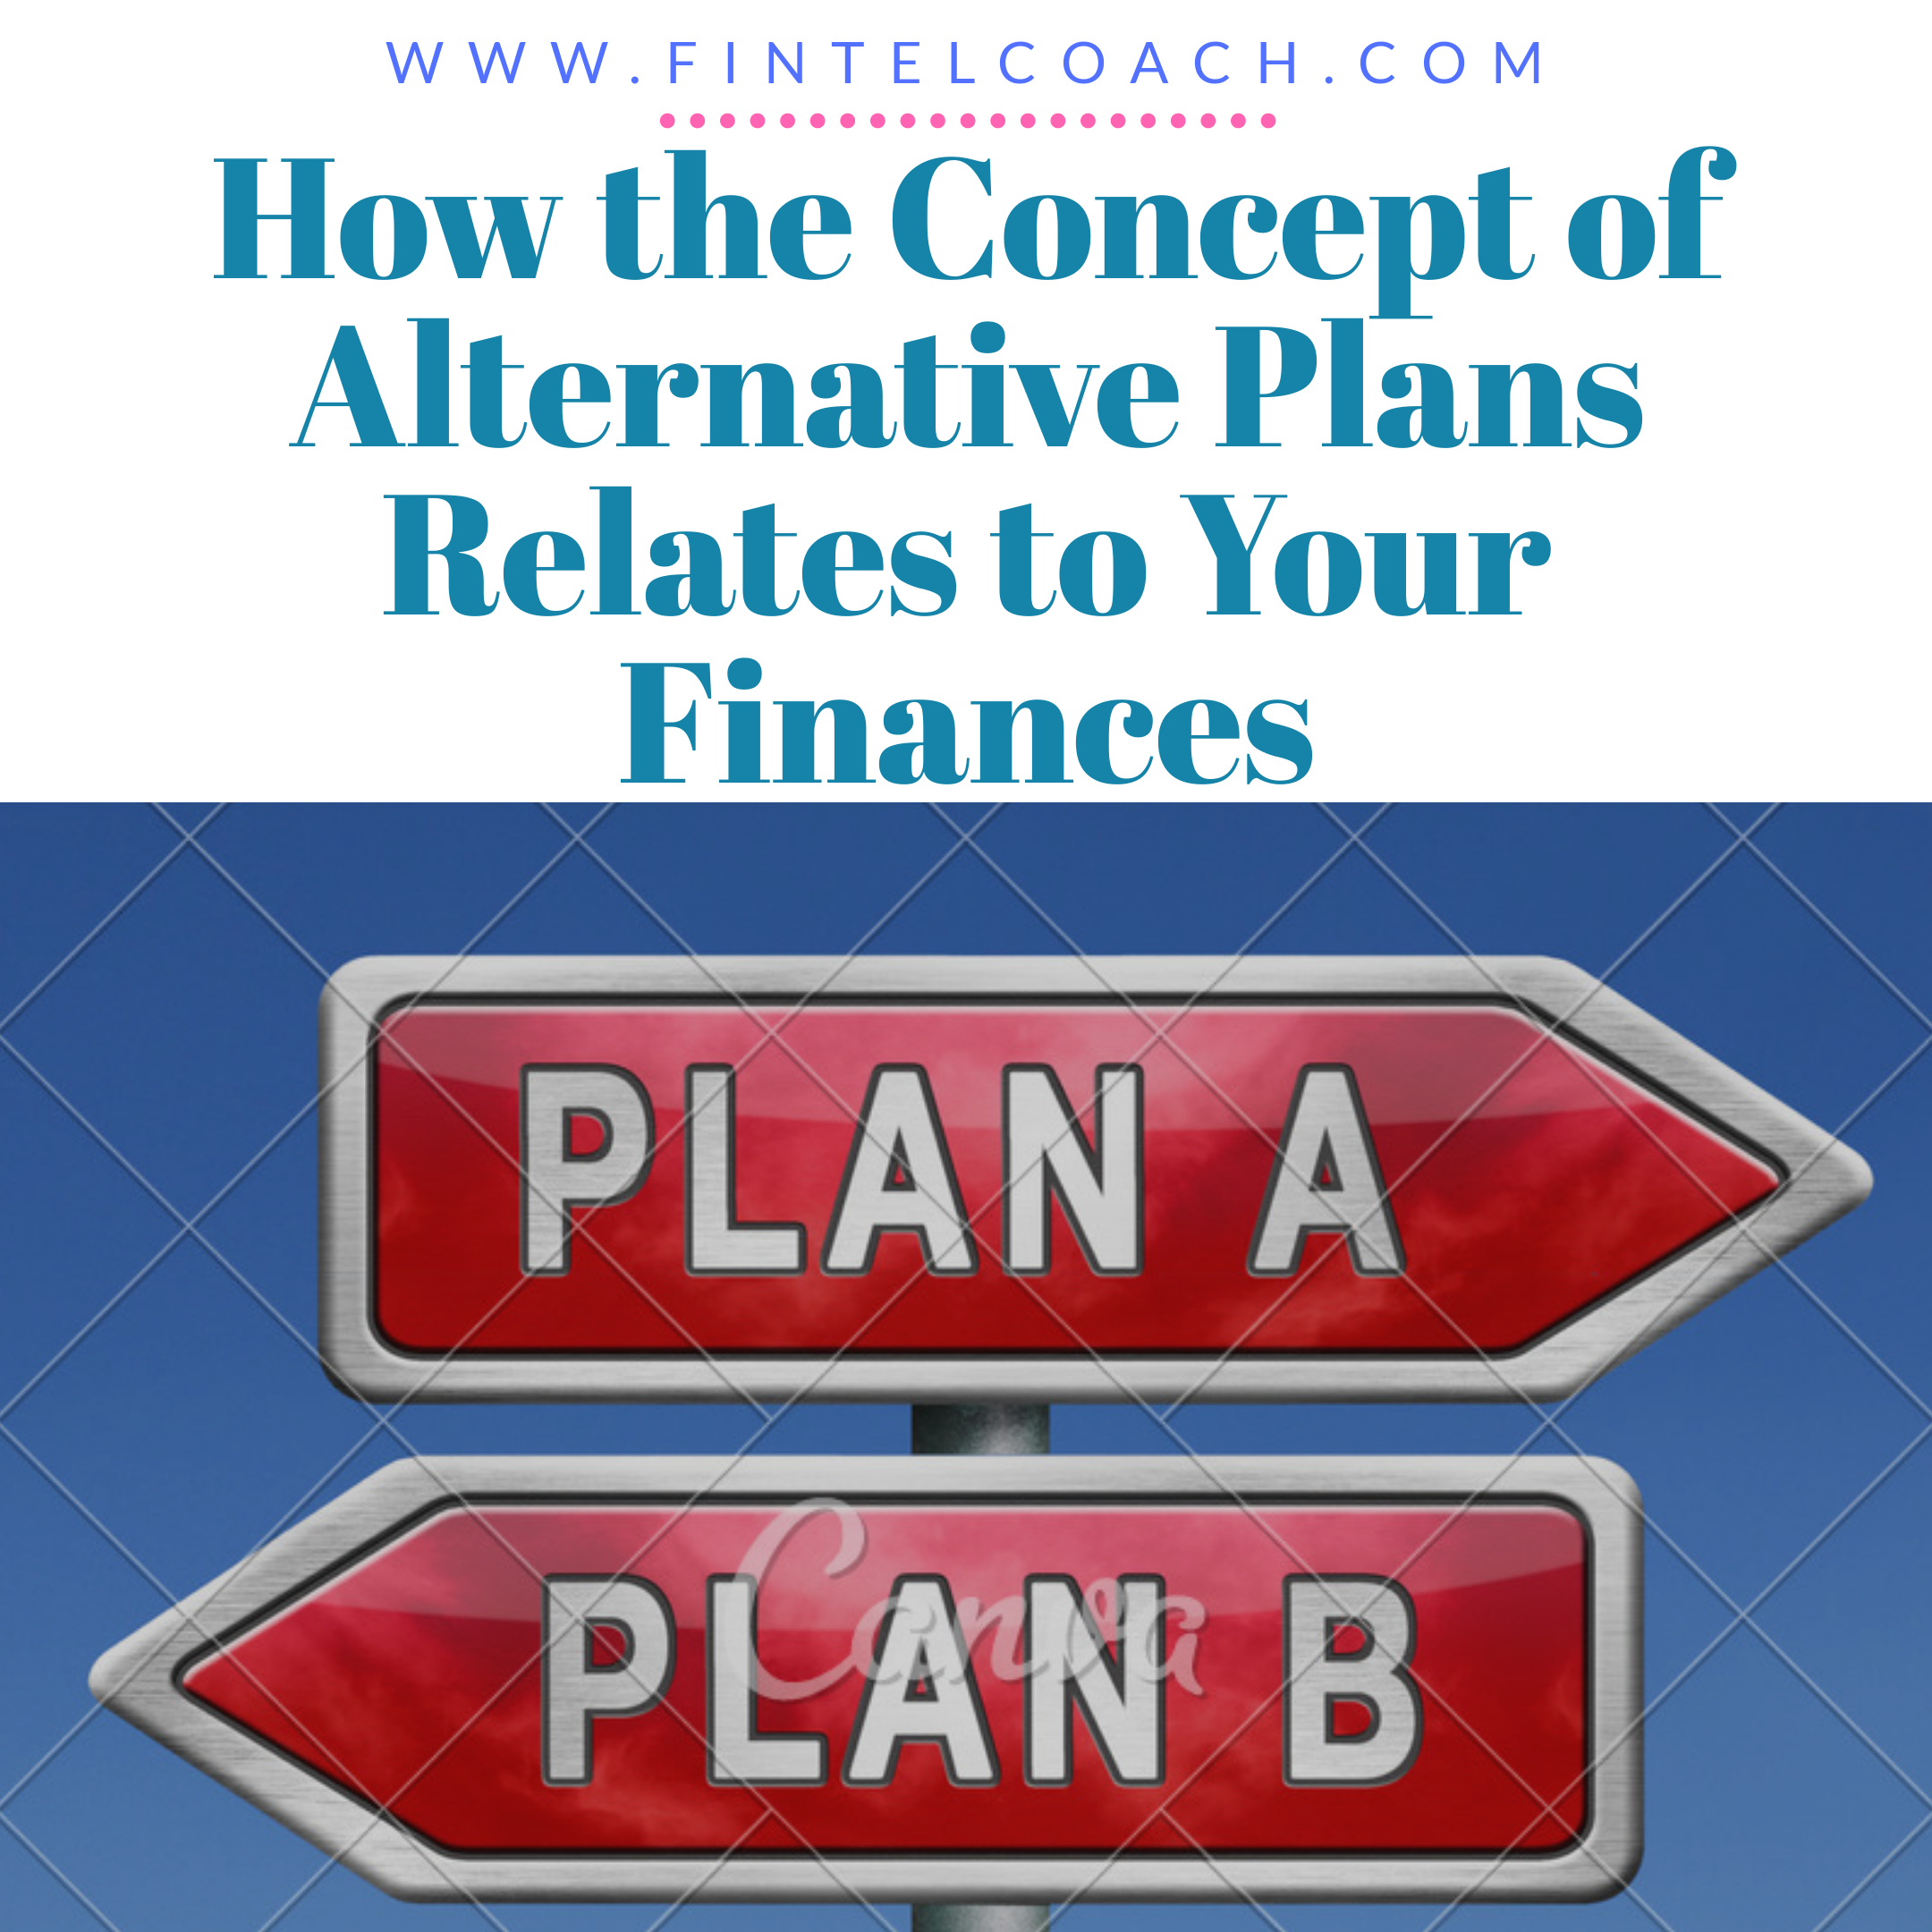 How the Concept of Alternative Plans Relates to Your Finances